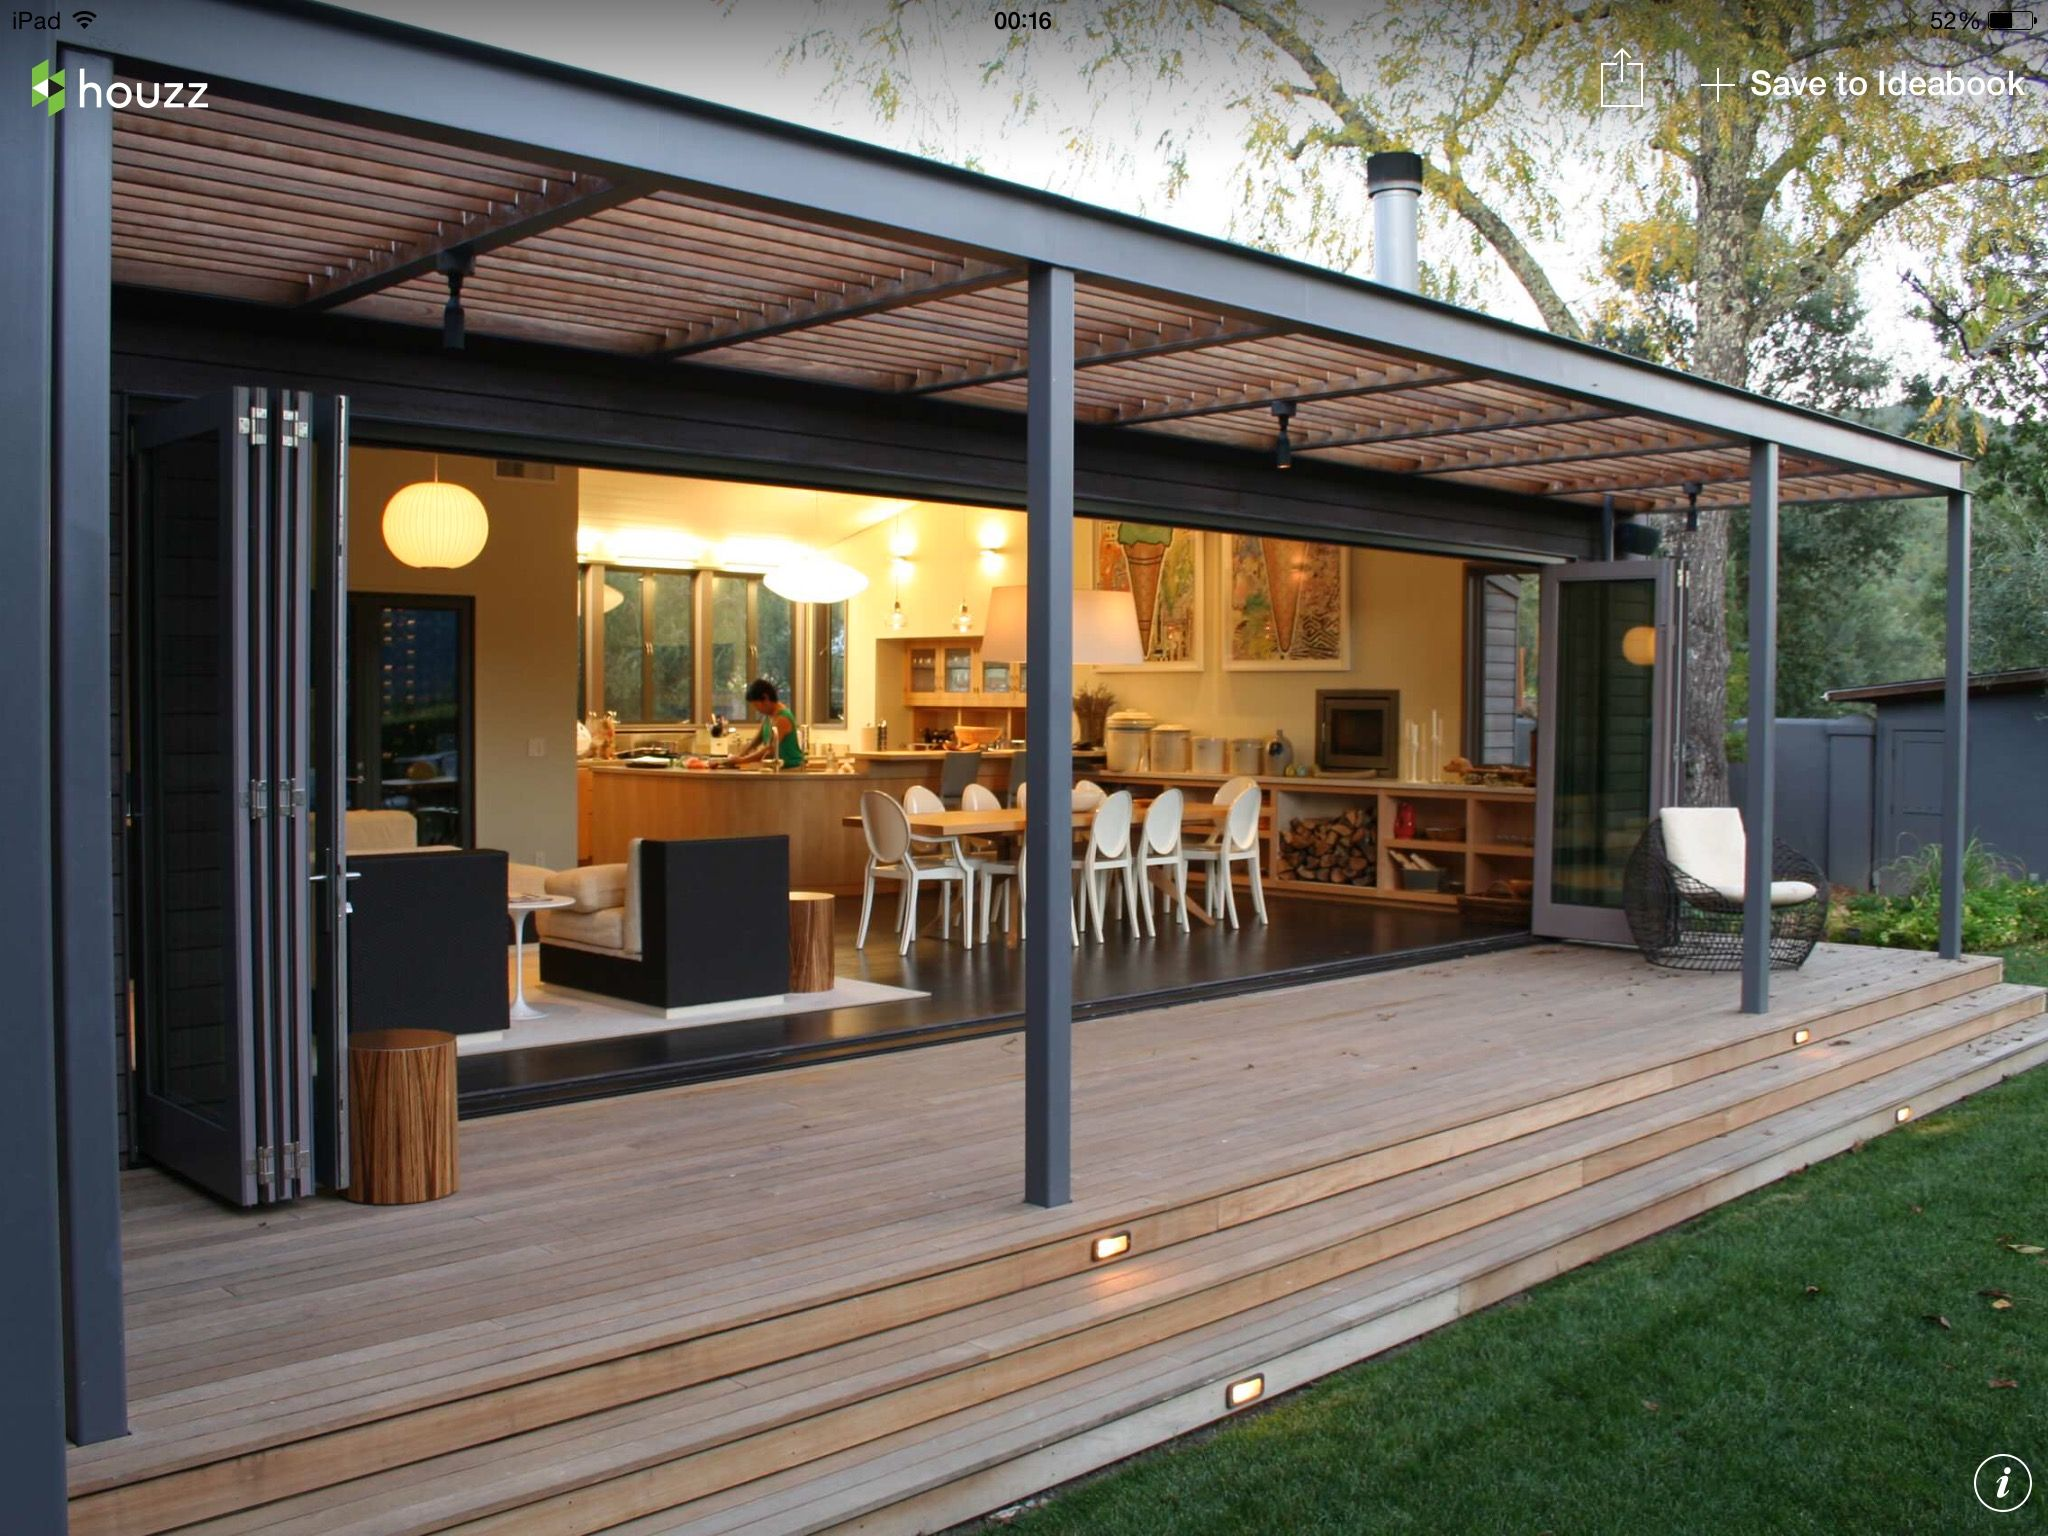 Pin by dort bard on ev pinterest decking smallest house and house